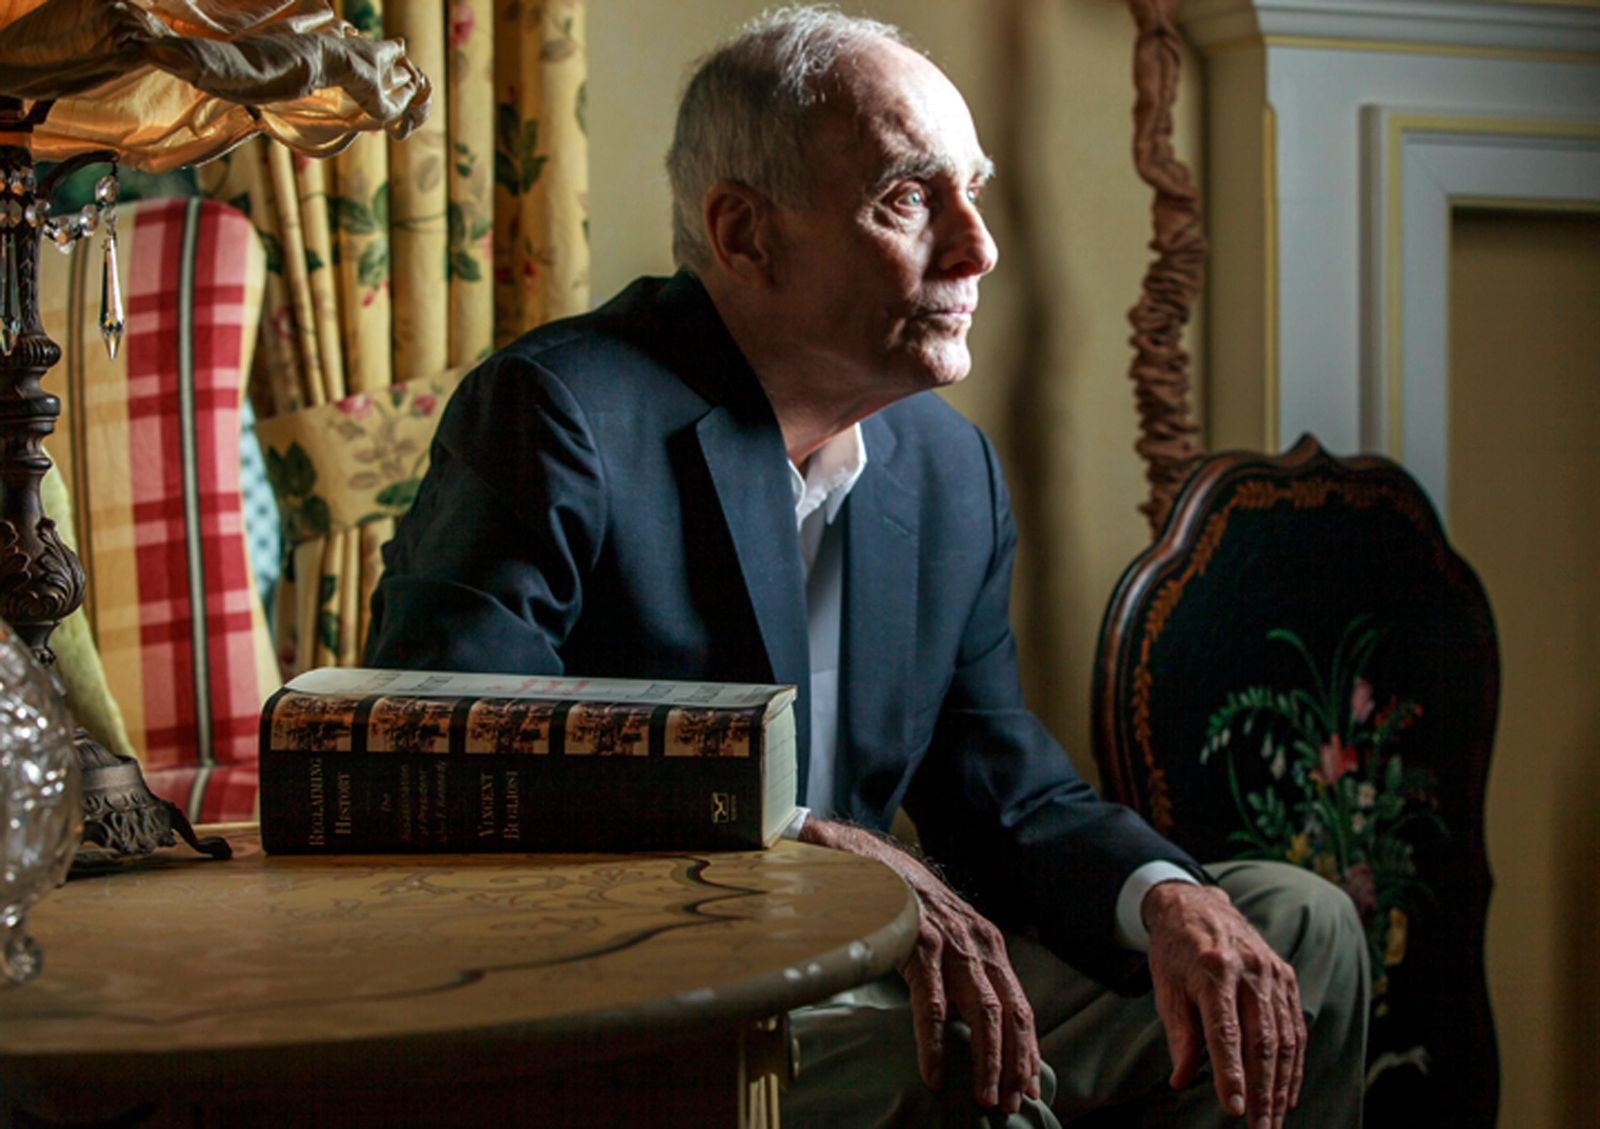 "FILE - In this March 7, 2013 file photo, former Los Angeles prosecutor Vincent Bugliosi sits next to his book: ""Reclaiming History: The Assassination of President John F. Kennedy"" at his home in Pasadena, Calif. (AP Photo/Damian Dovarganes, File)"